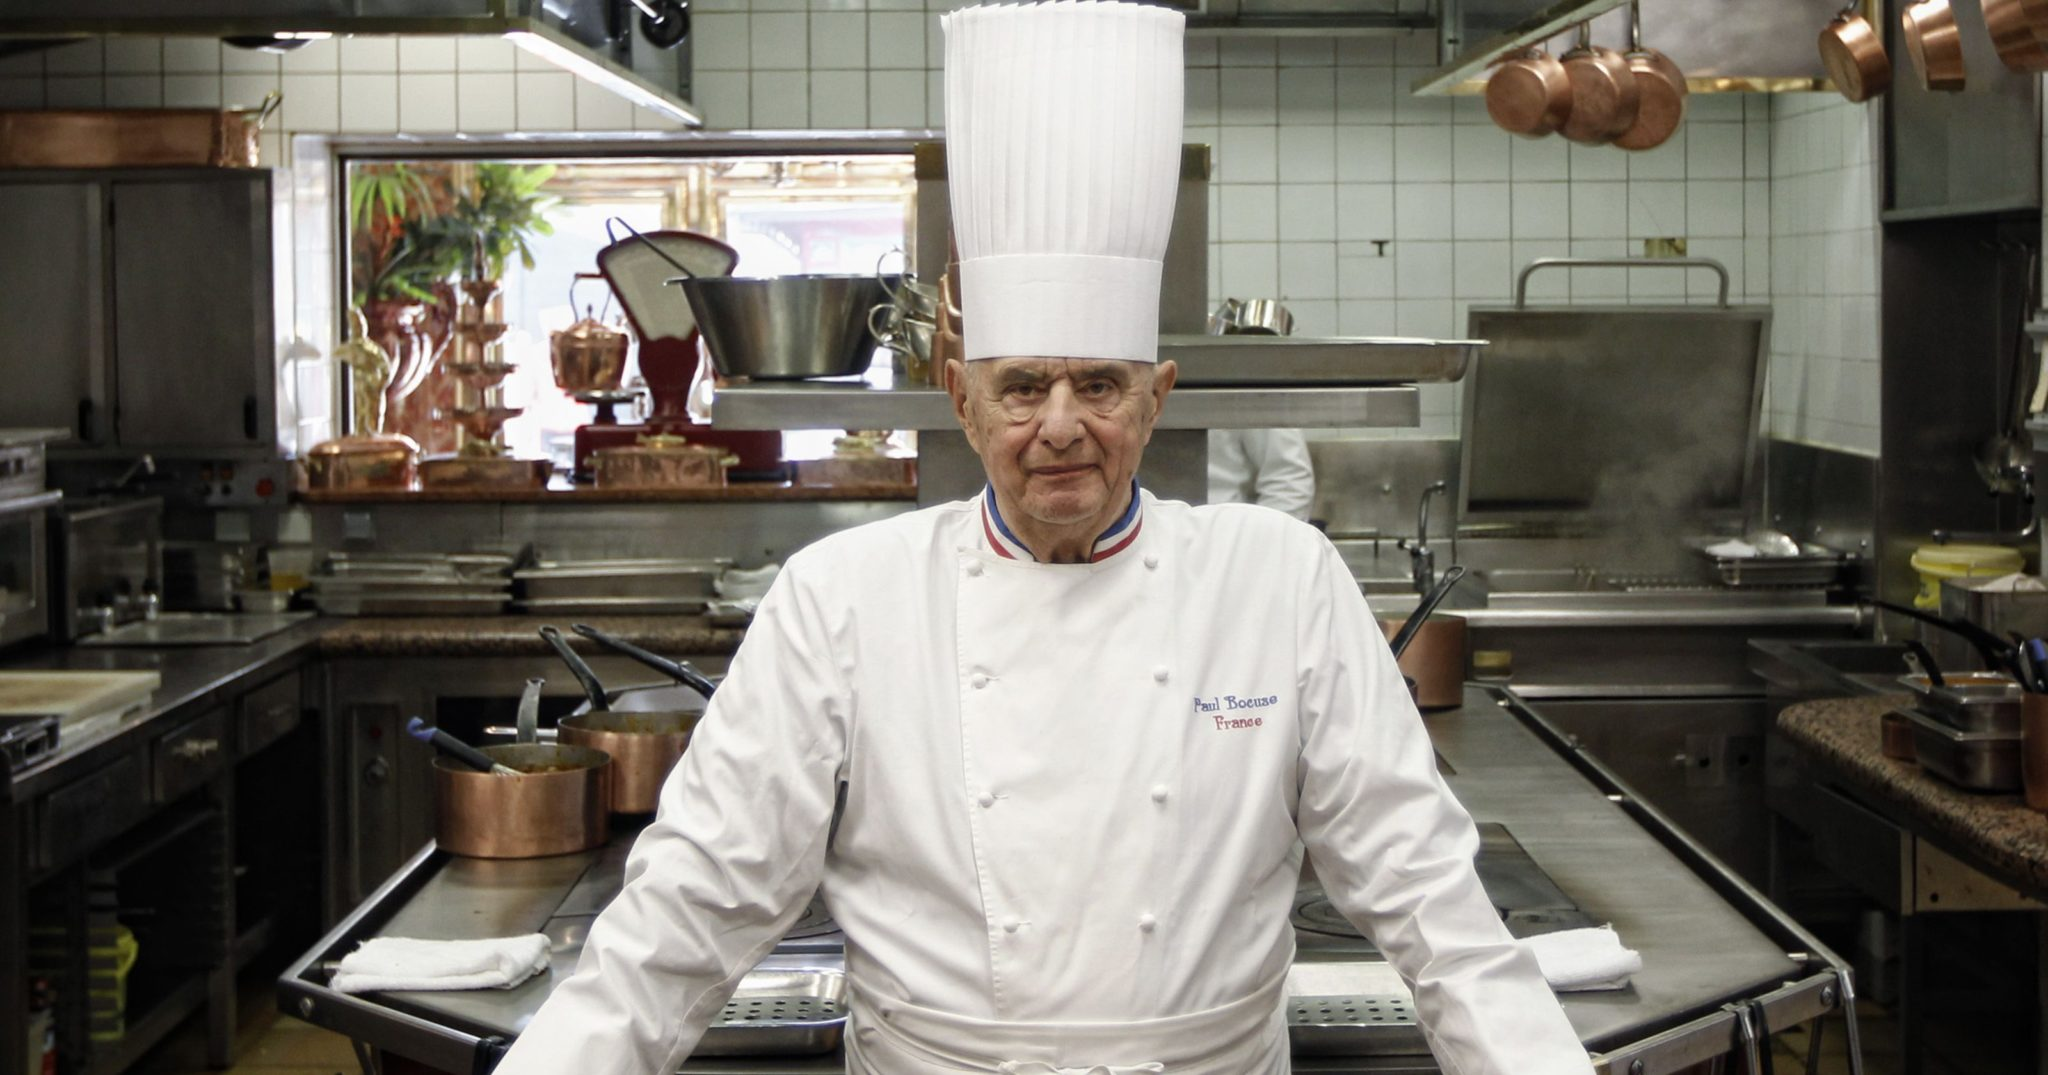 paul bocuse a master of french cuisine dies at 91. Black Bedroom Furniture Sets. Home Design Ideas